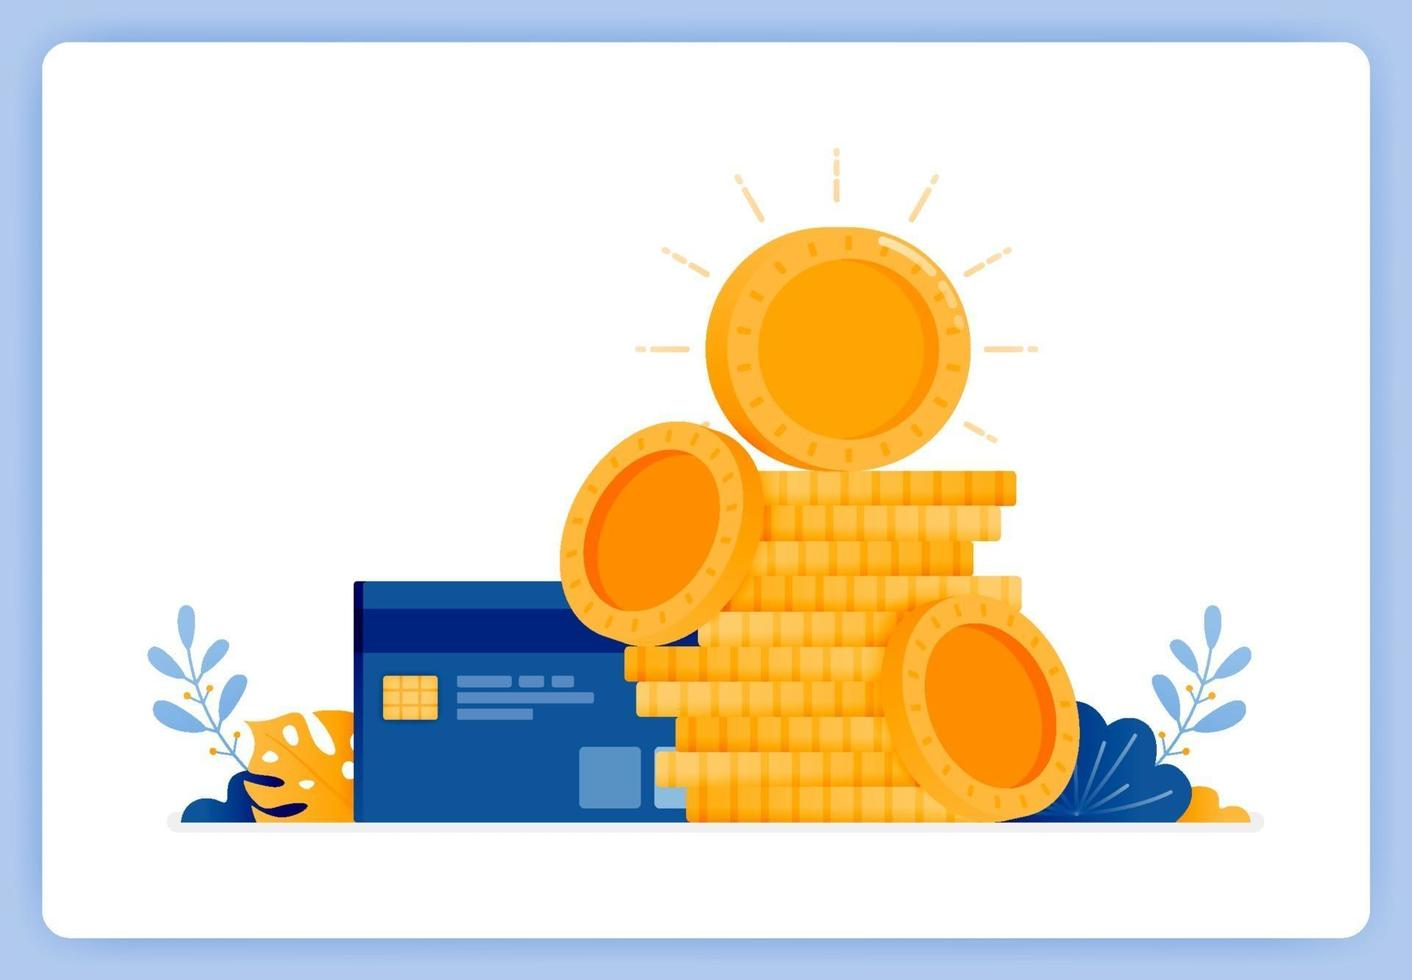 Pile of currency coins with credit card on side, jokes of debt. Can be used for landing pages, websites, posters, mobile apps vector